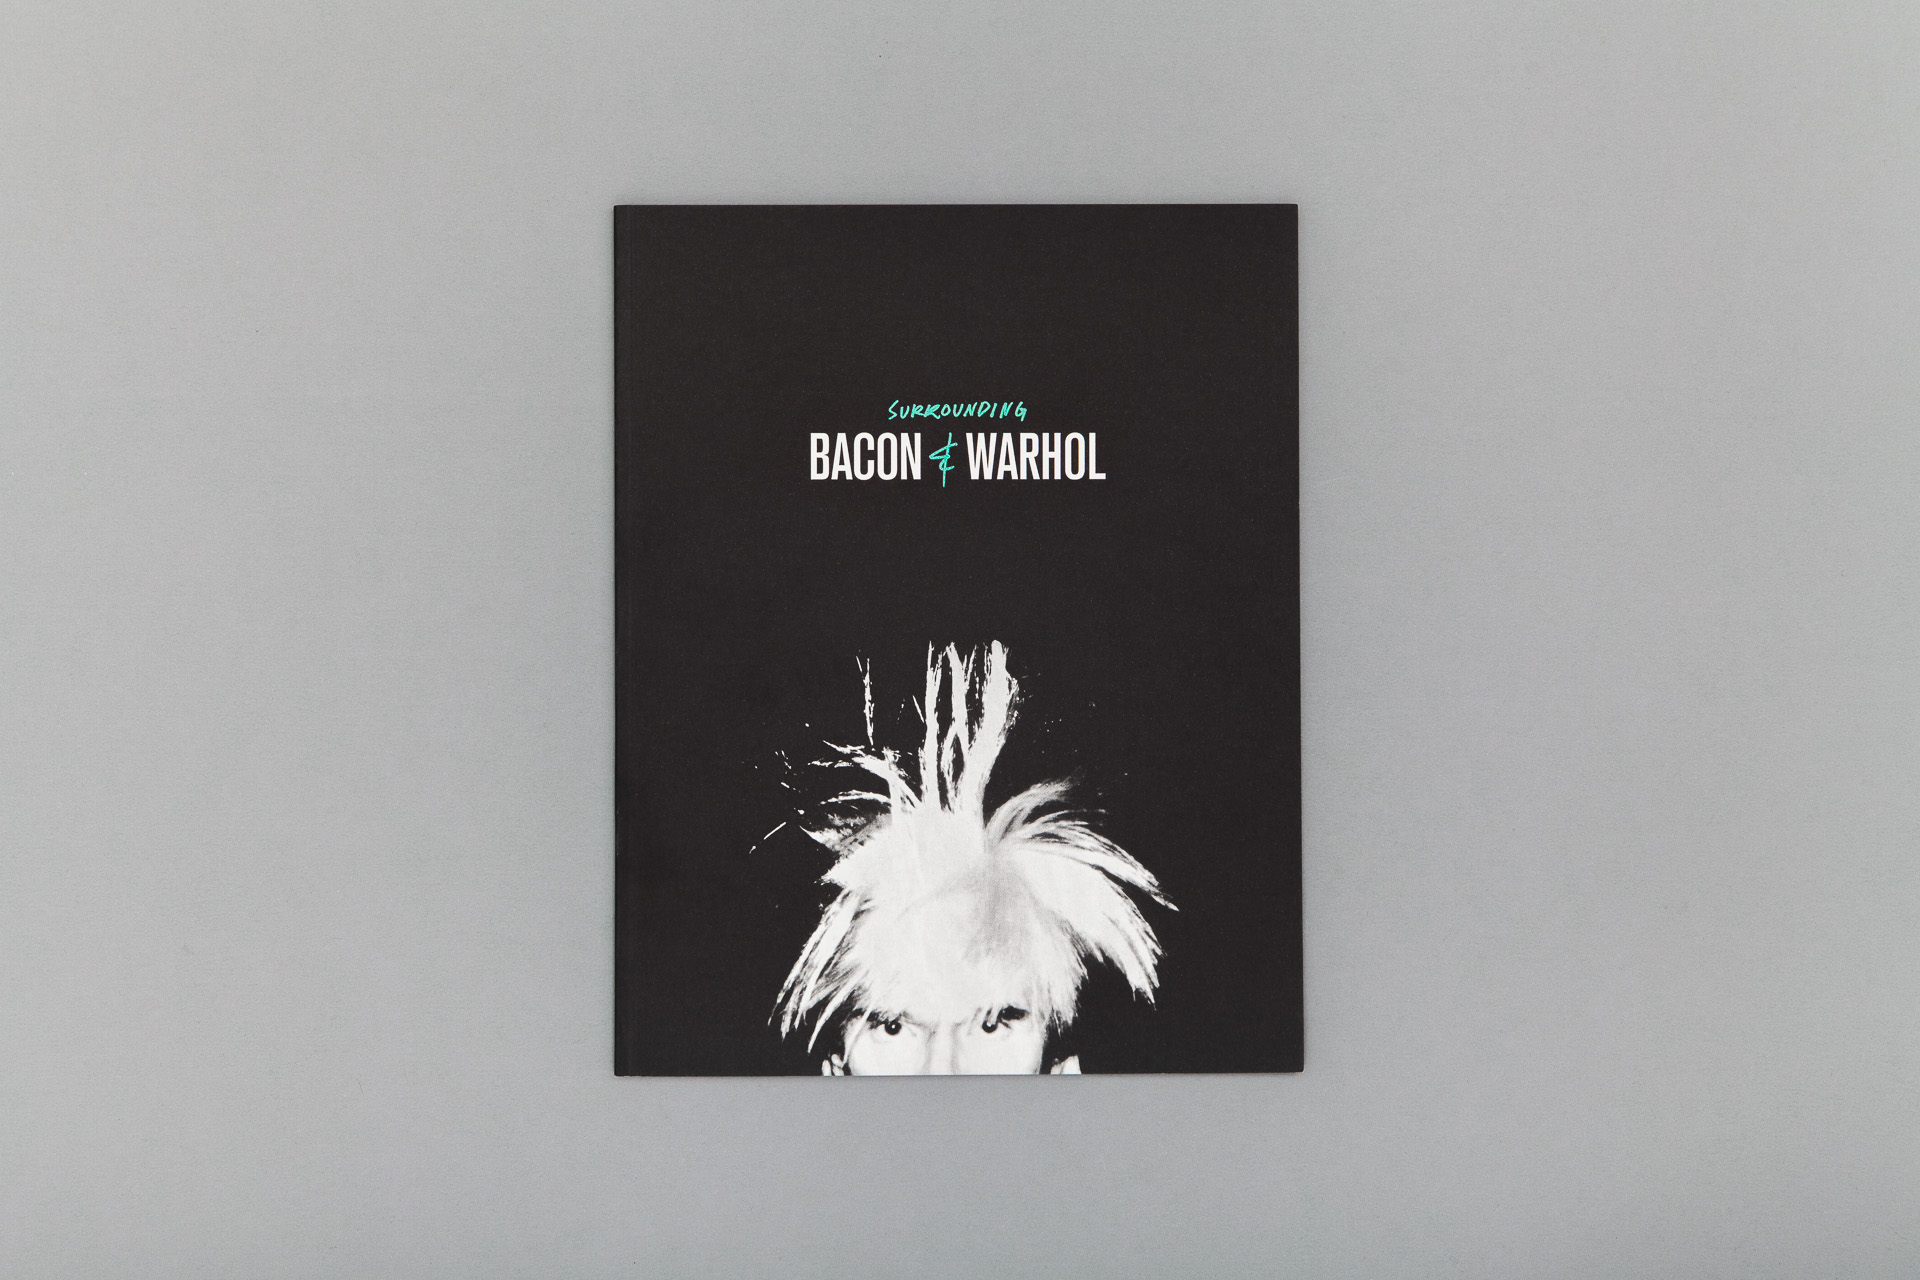 Surrounding Bacon & Warhol